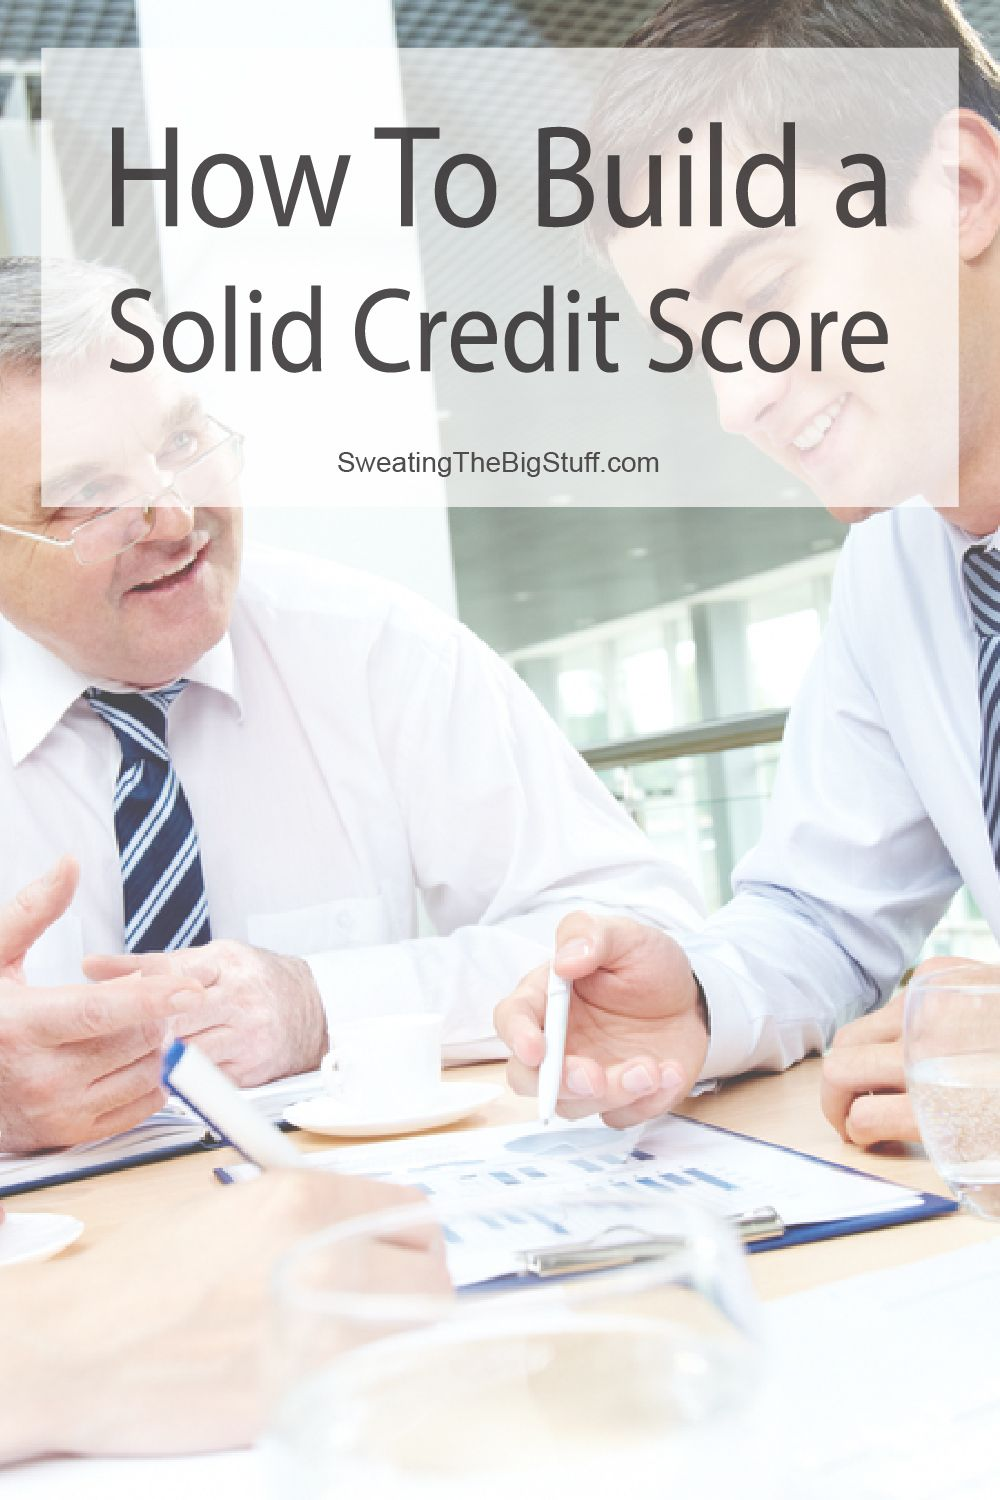 How To Build a Solid Credit Score